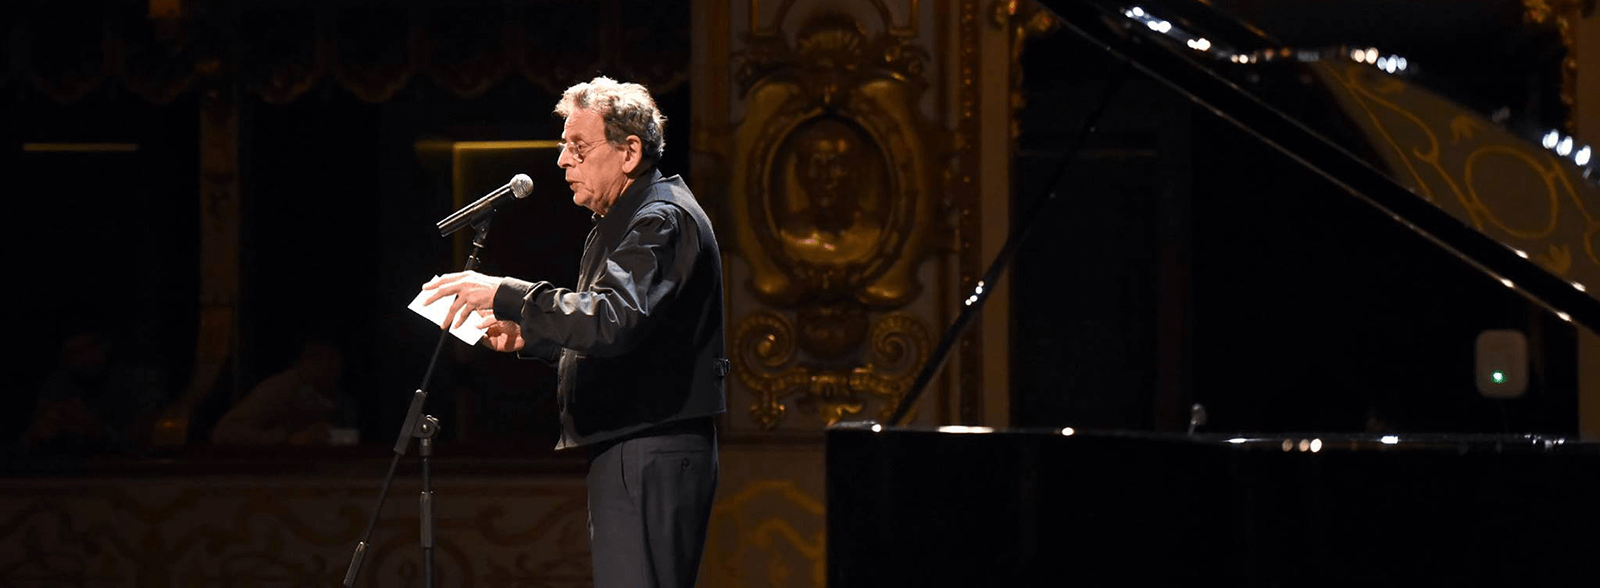 PHILIP GLASS, ETUDES: PIANO STUDIES WILL BE THE MOST PLAYED IN THE FUTURE.